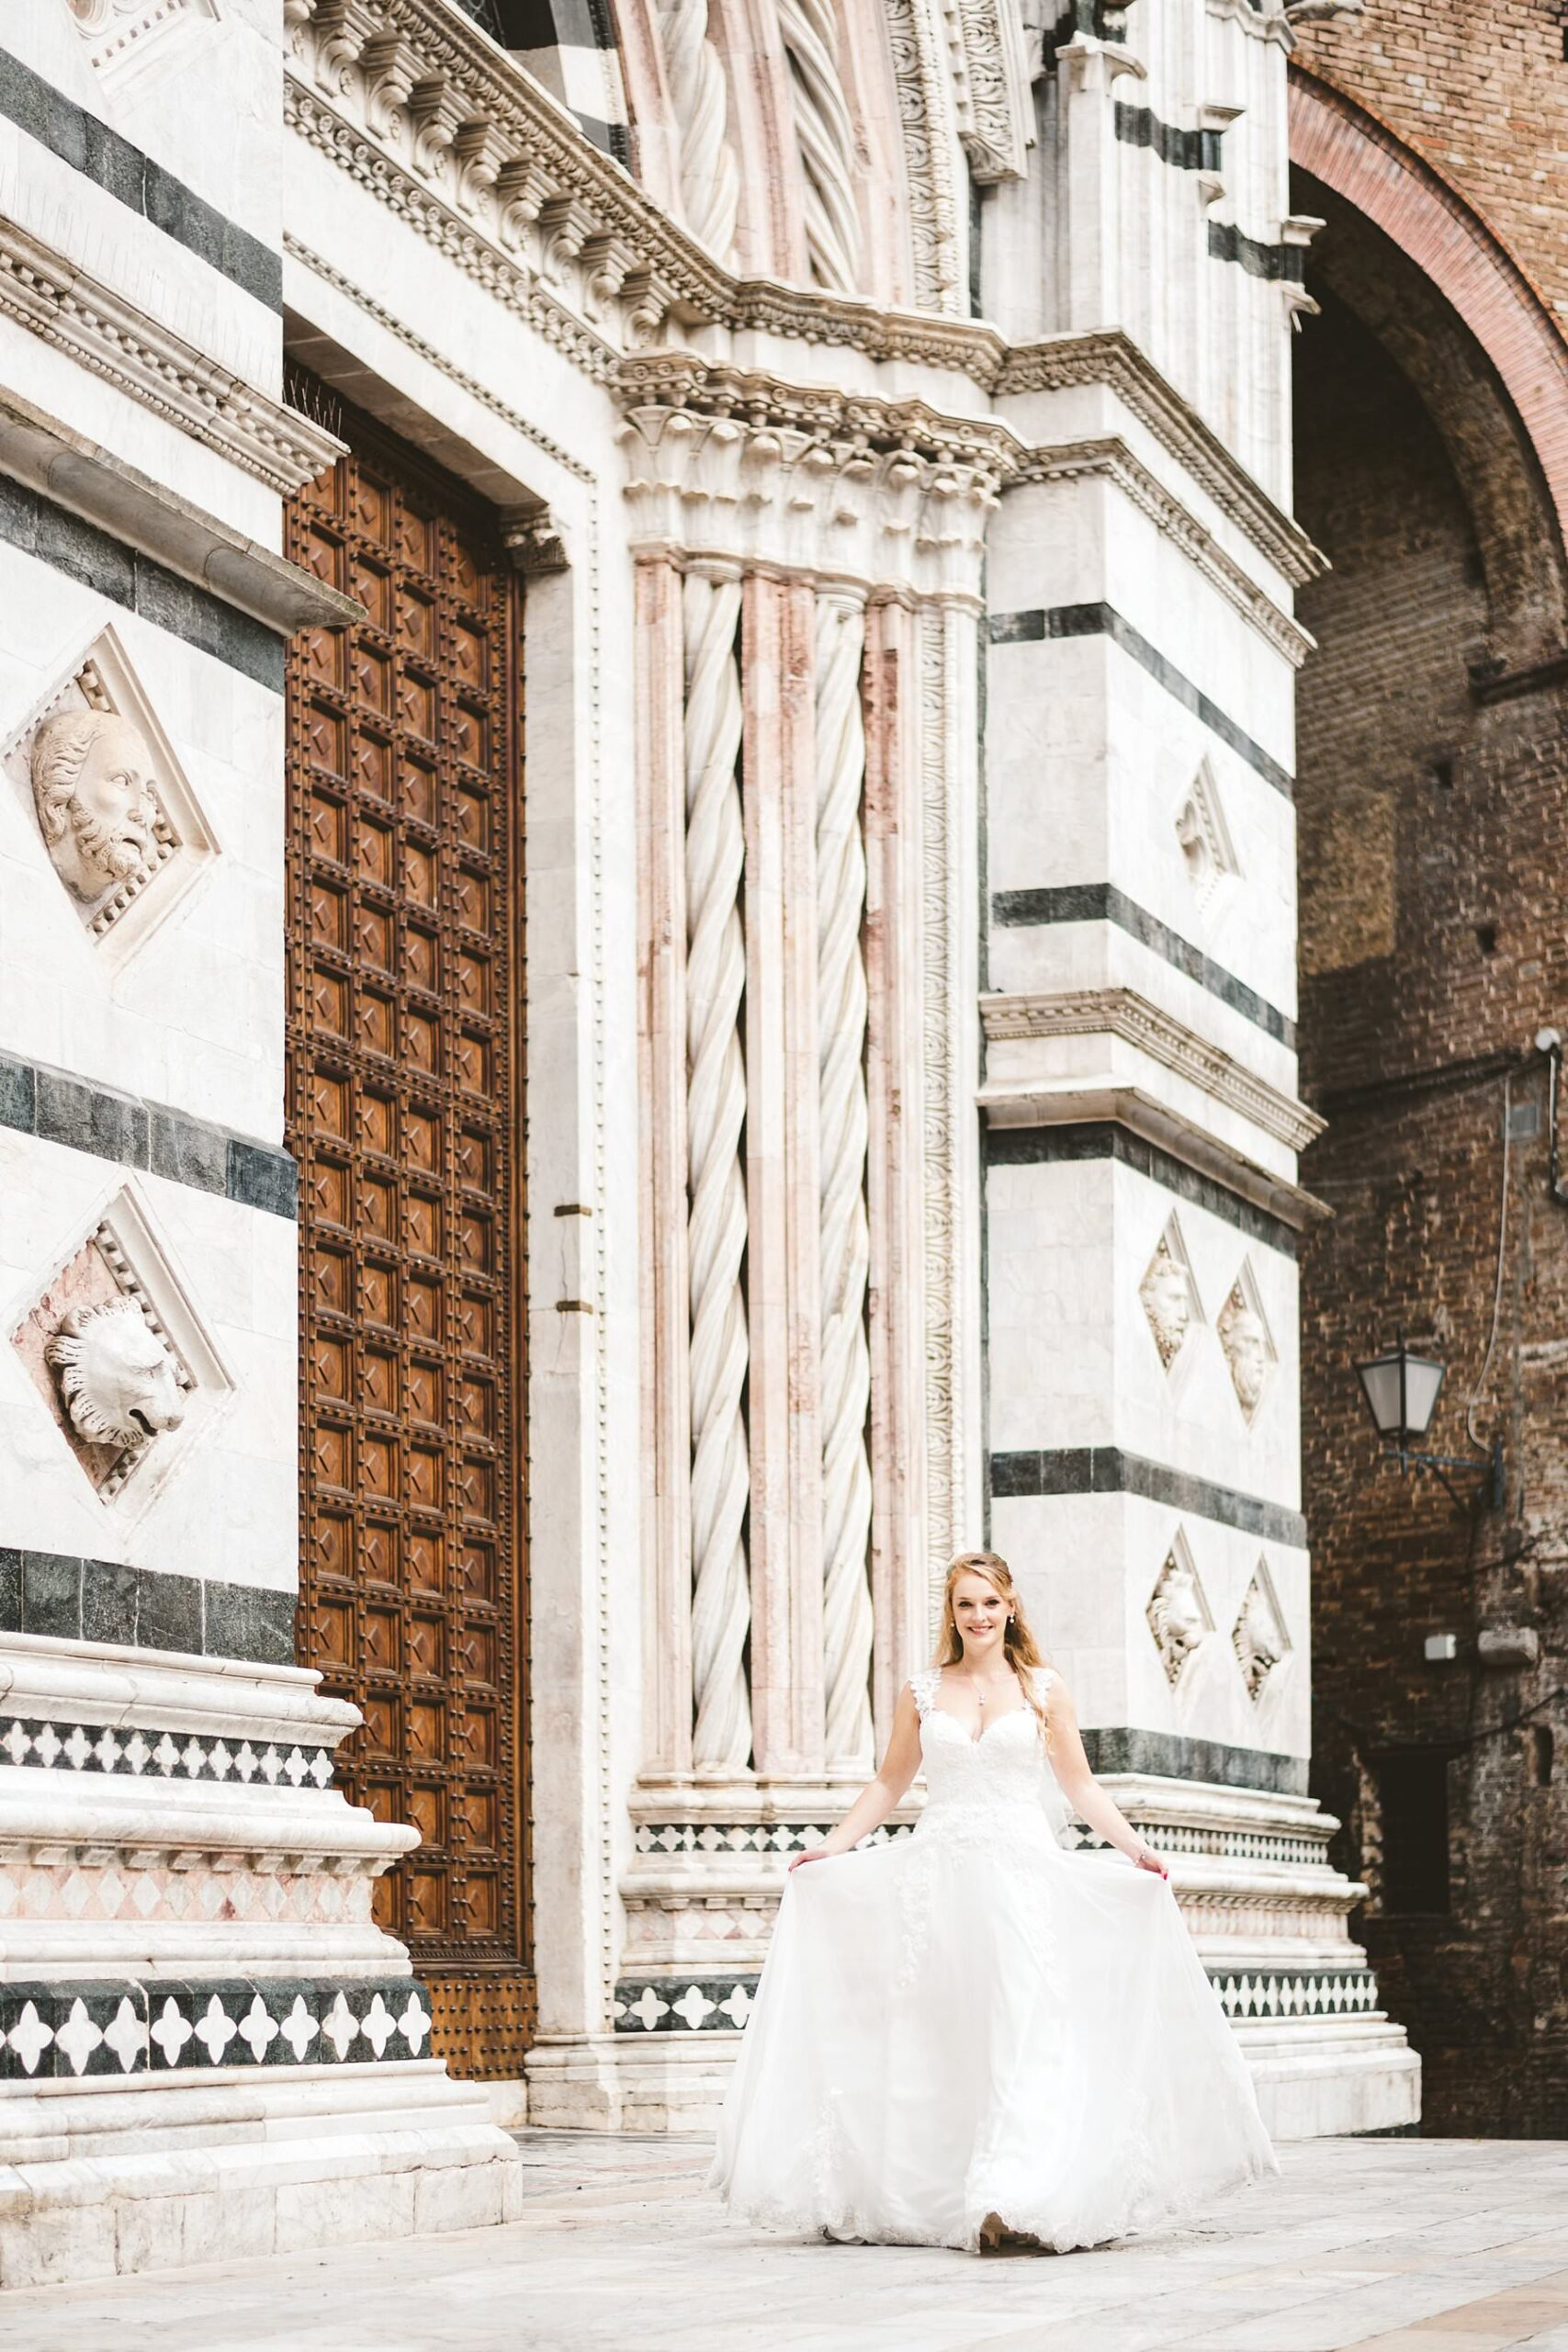 Elegant bride in gorgeous Justin Alexander gown walks near the Duomo of Siena in the heart of the city. Intimate destination wedding elopement in Italy